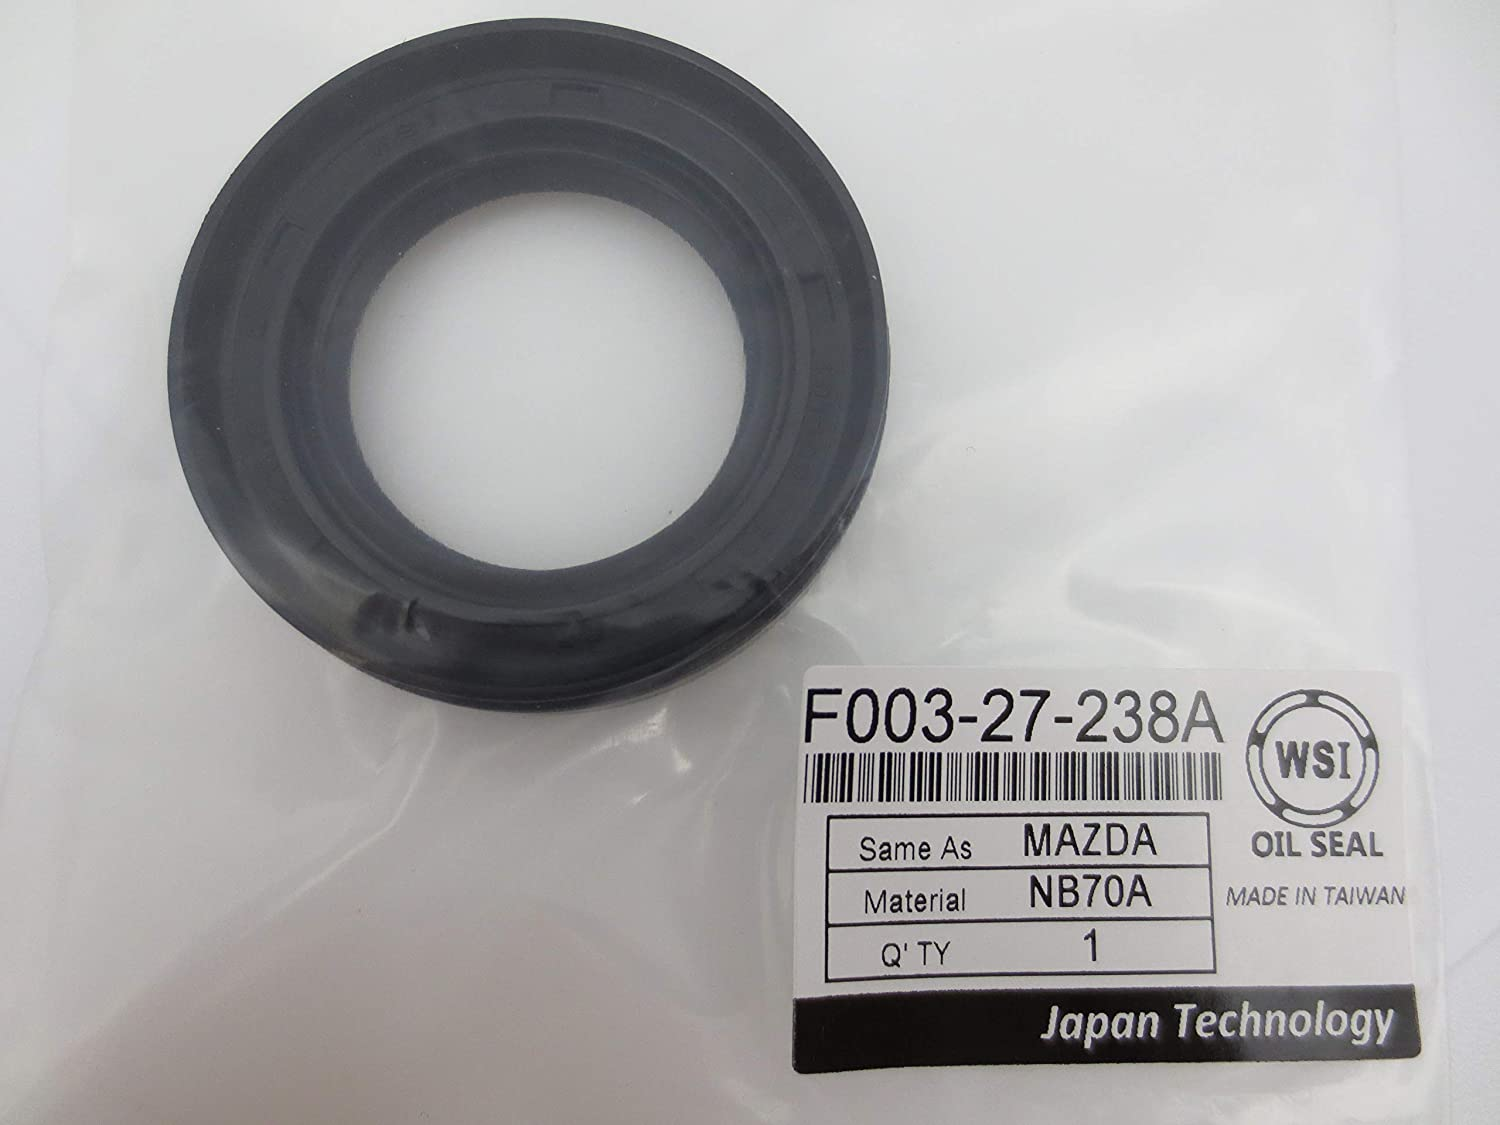 Albuquerque Mall WSI 40% OFF Cheap Sale F003-27-238A Shaft Seal differential - for Mazda